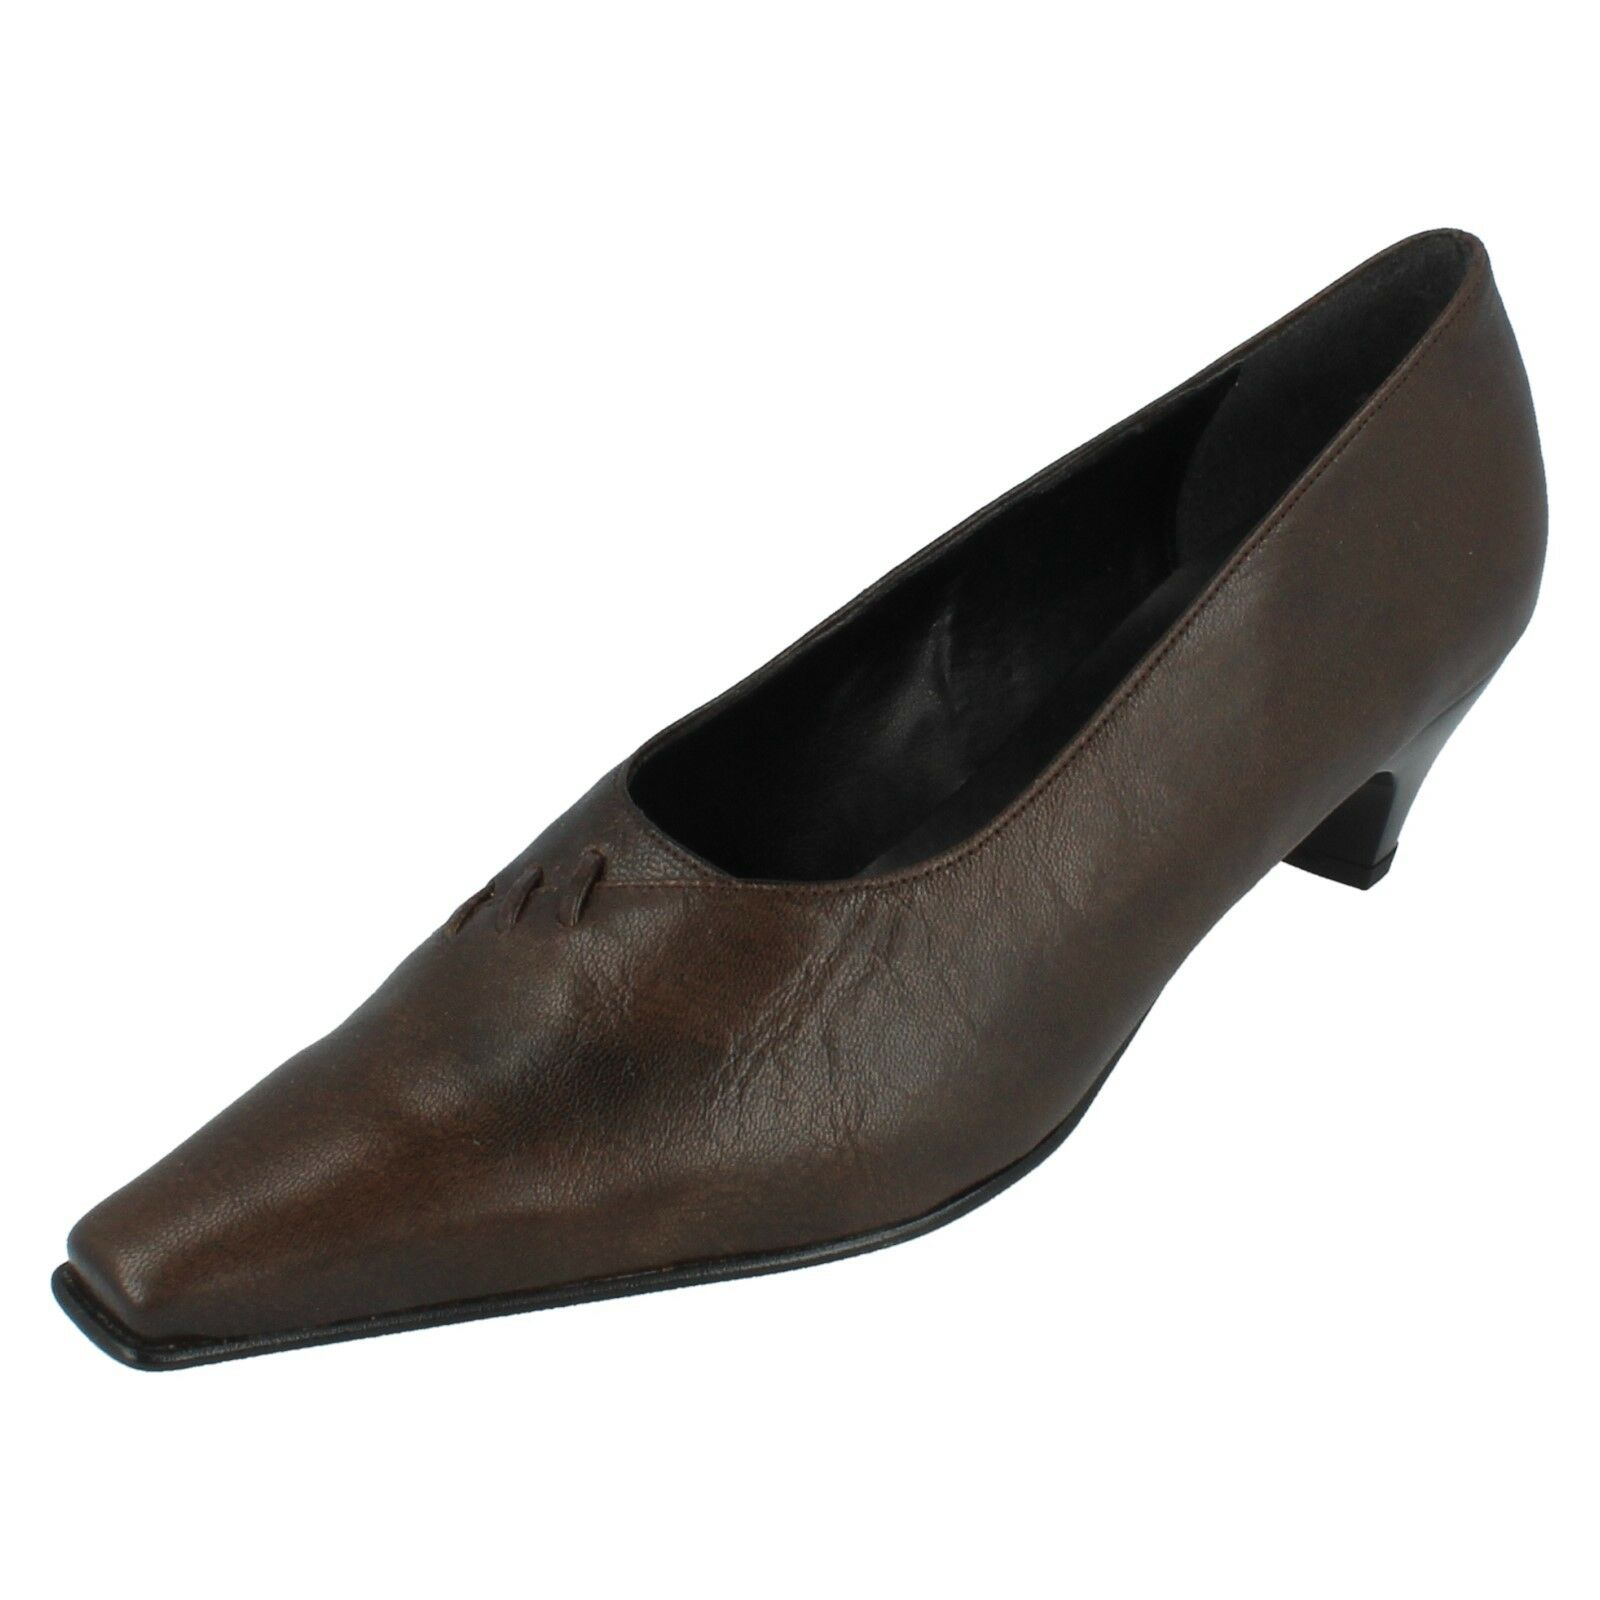 Ladies SIGARO Size 5 Brown Leather Court Shoes with Stitch Detailing by Piu Di